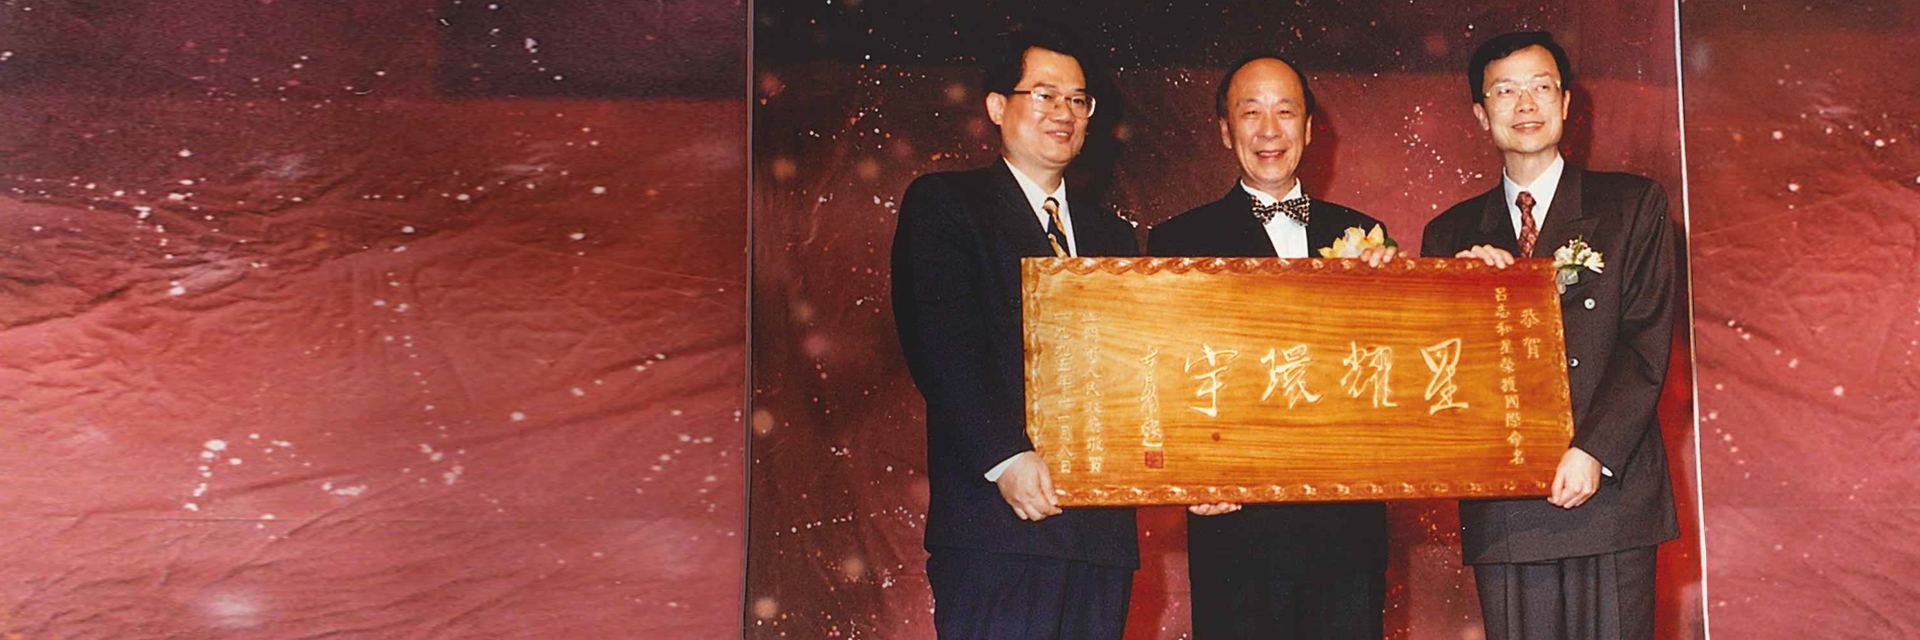 About Chairman and Founder Dr Lui Che-woo